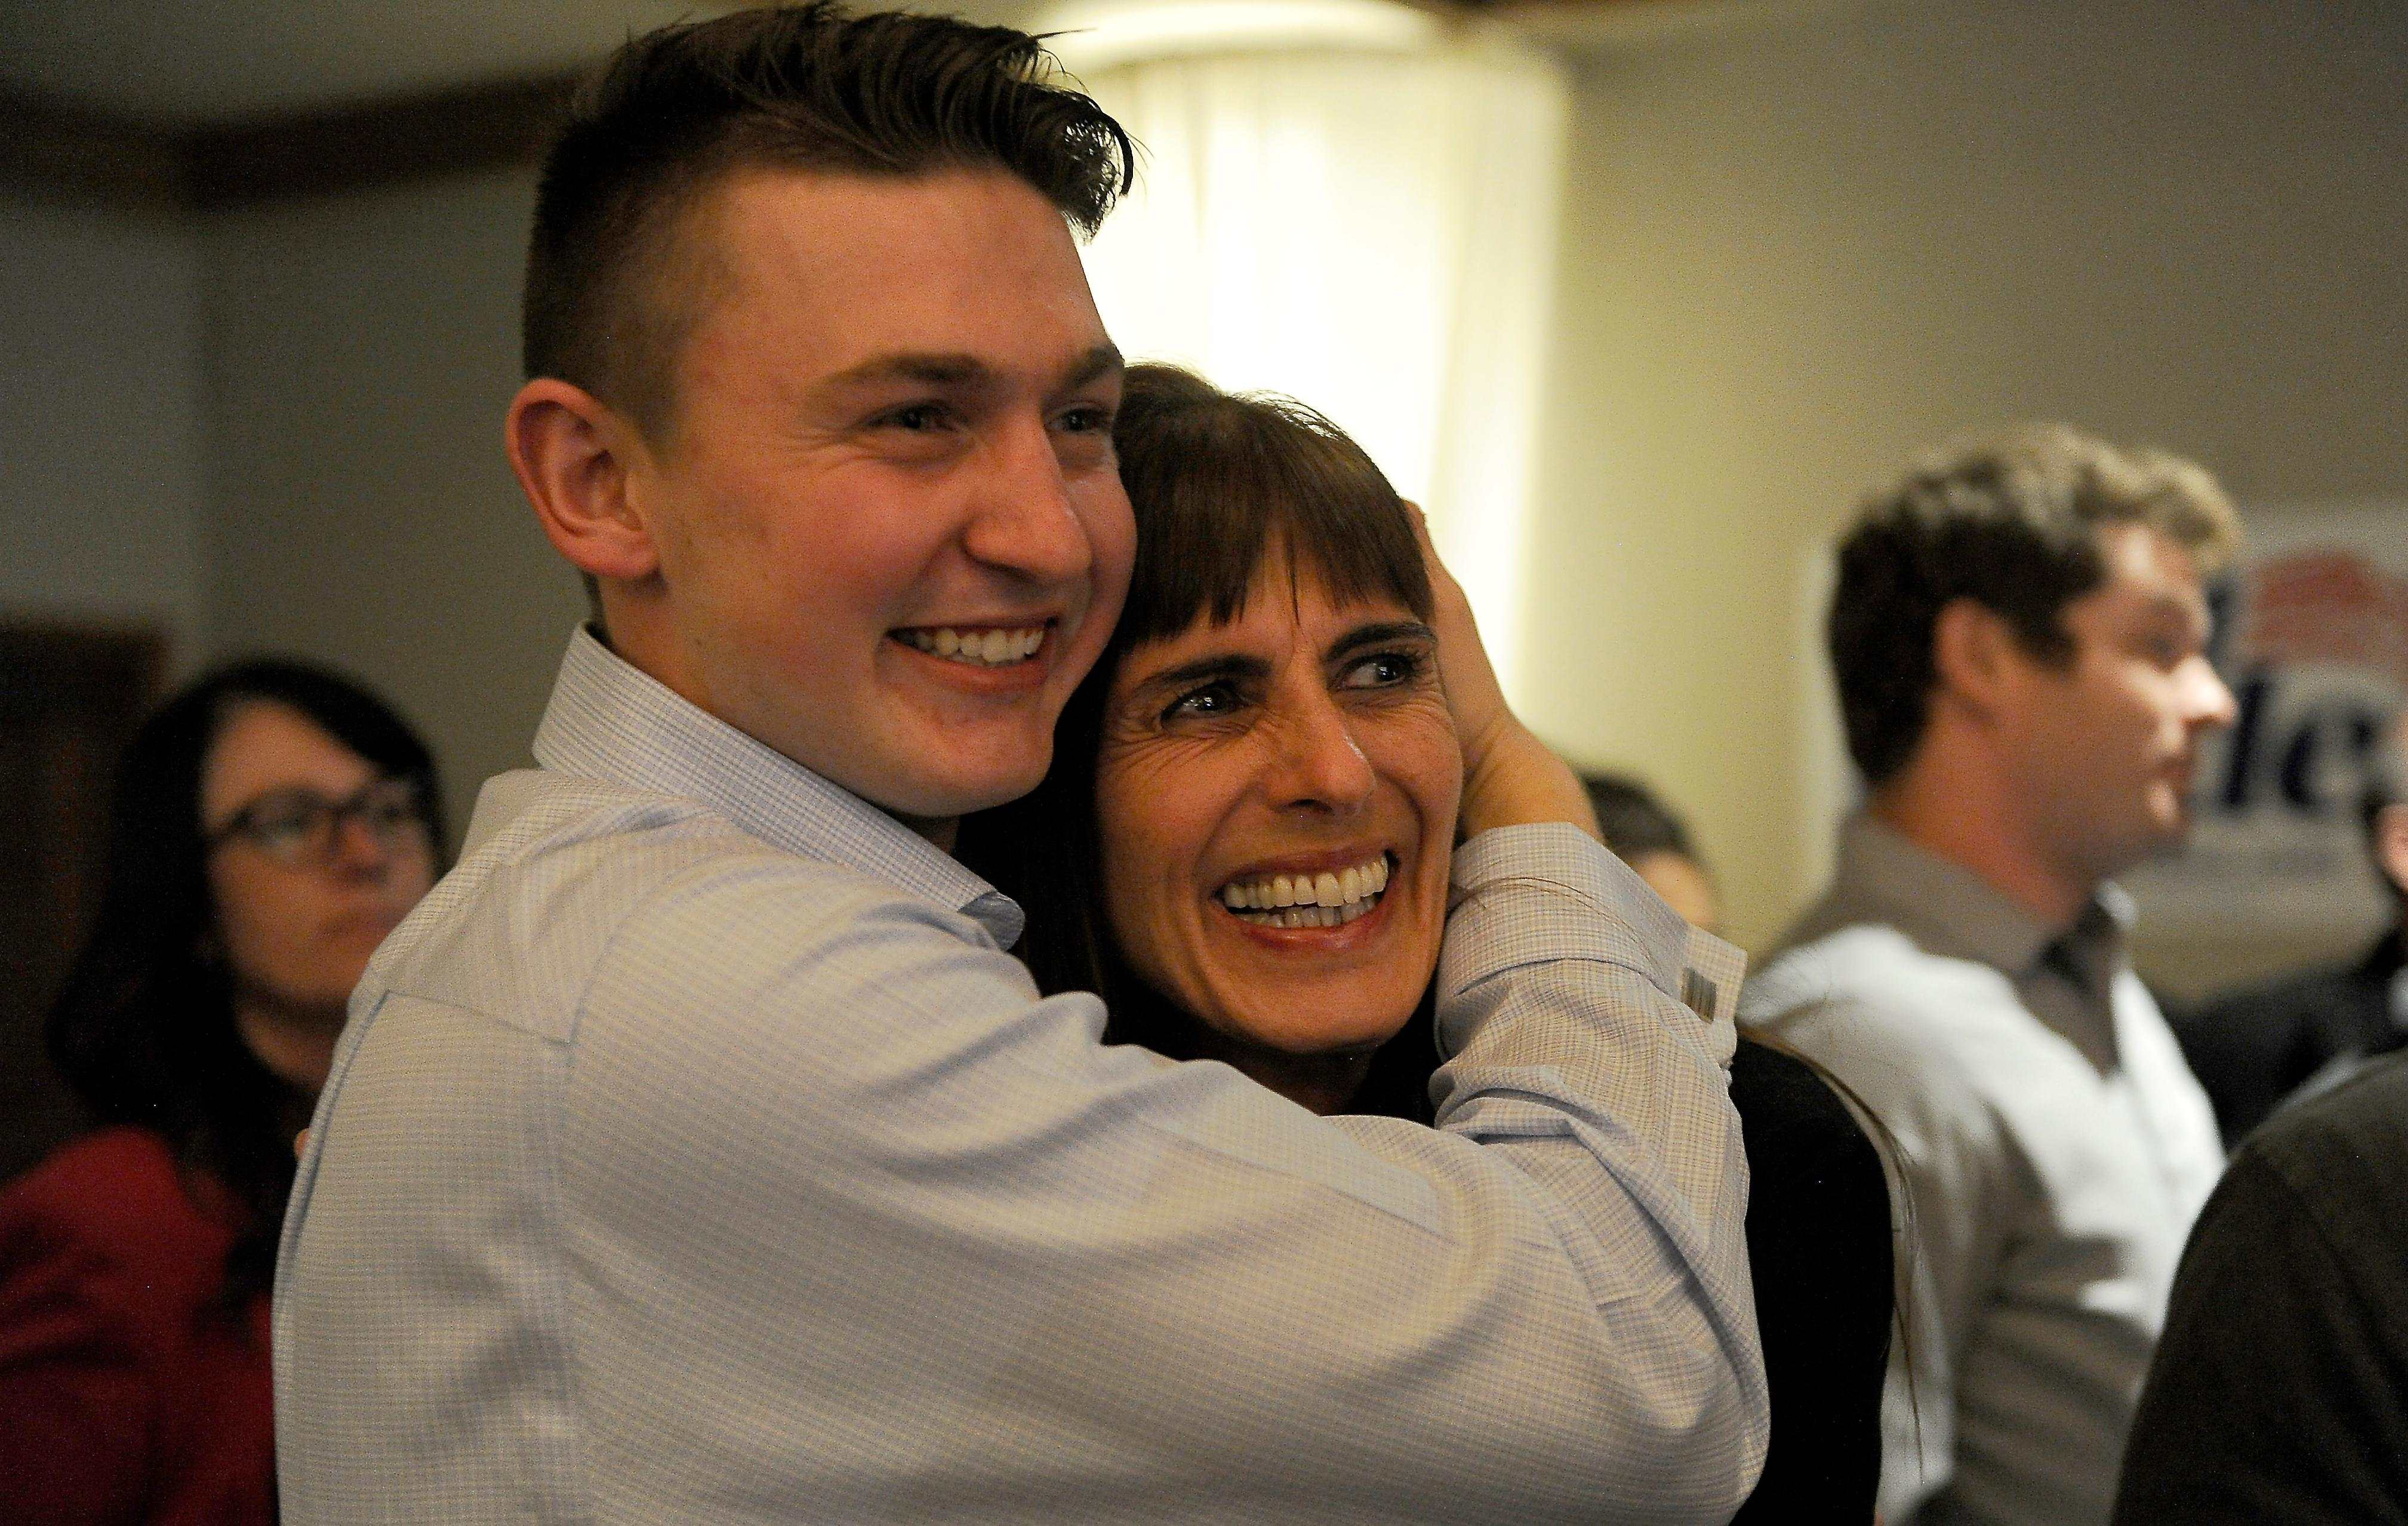 Andy Atkinson / Mail Tribune{ } Kim Wallen gets a hug from her son Eric after first results came in with a 7% lead in her favor at the Republican party held at the Rogue Valley Country Club Tuesday evening.